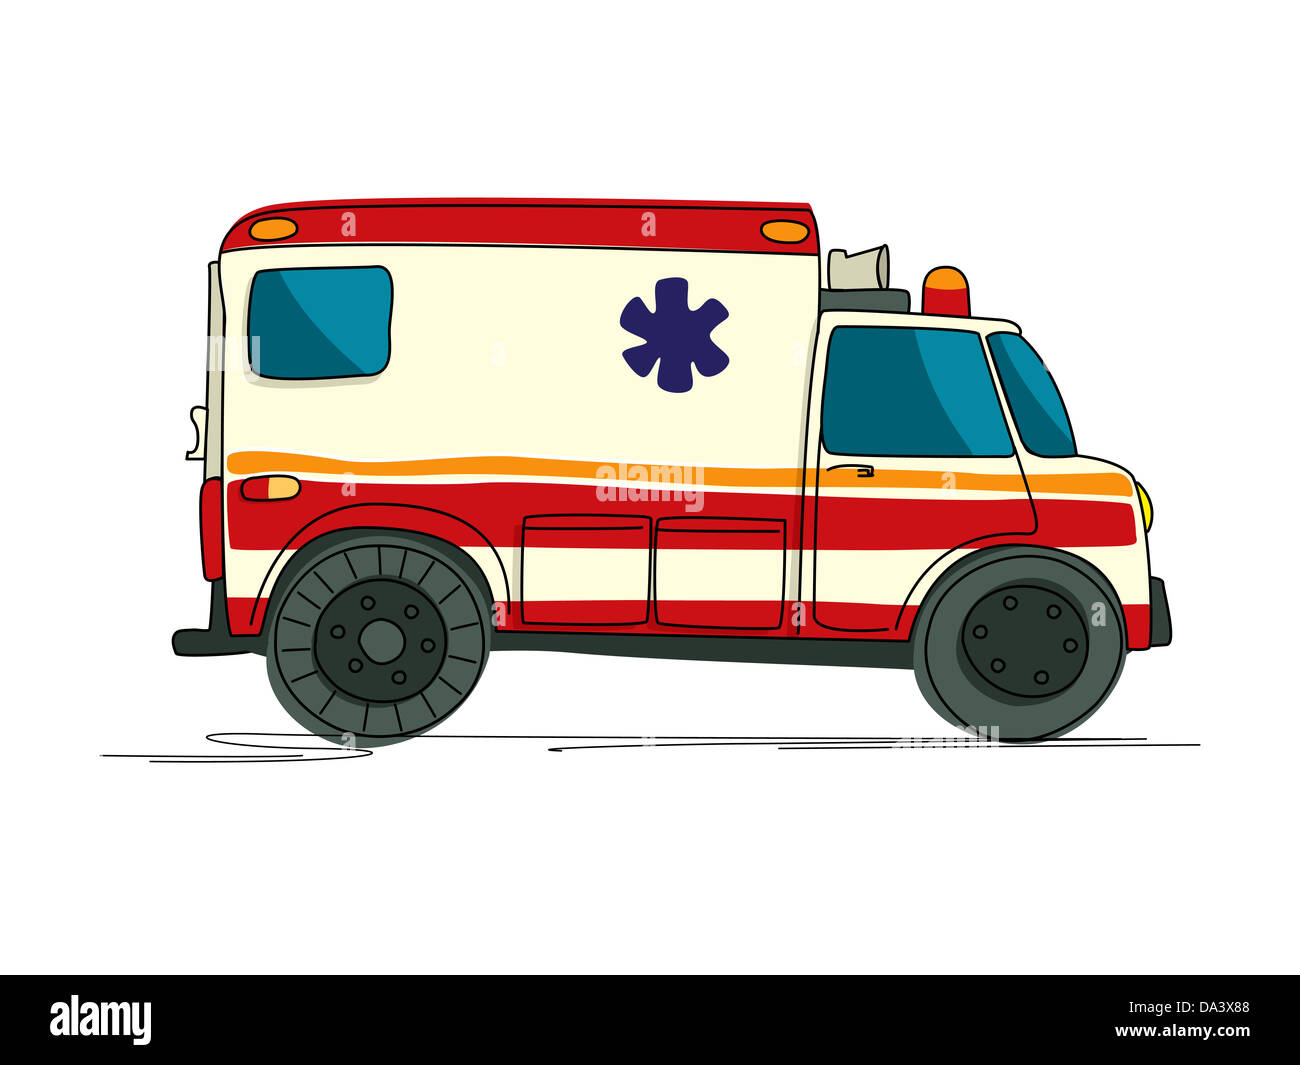 Traffic Accident Drawing Aid Stock Photos & Traffic Accident Drawing ...